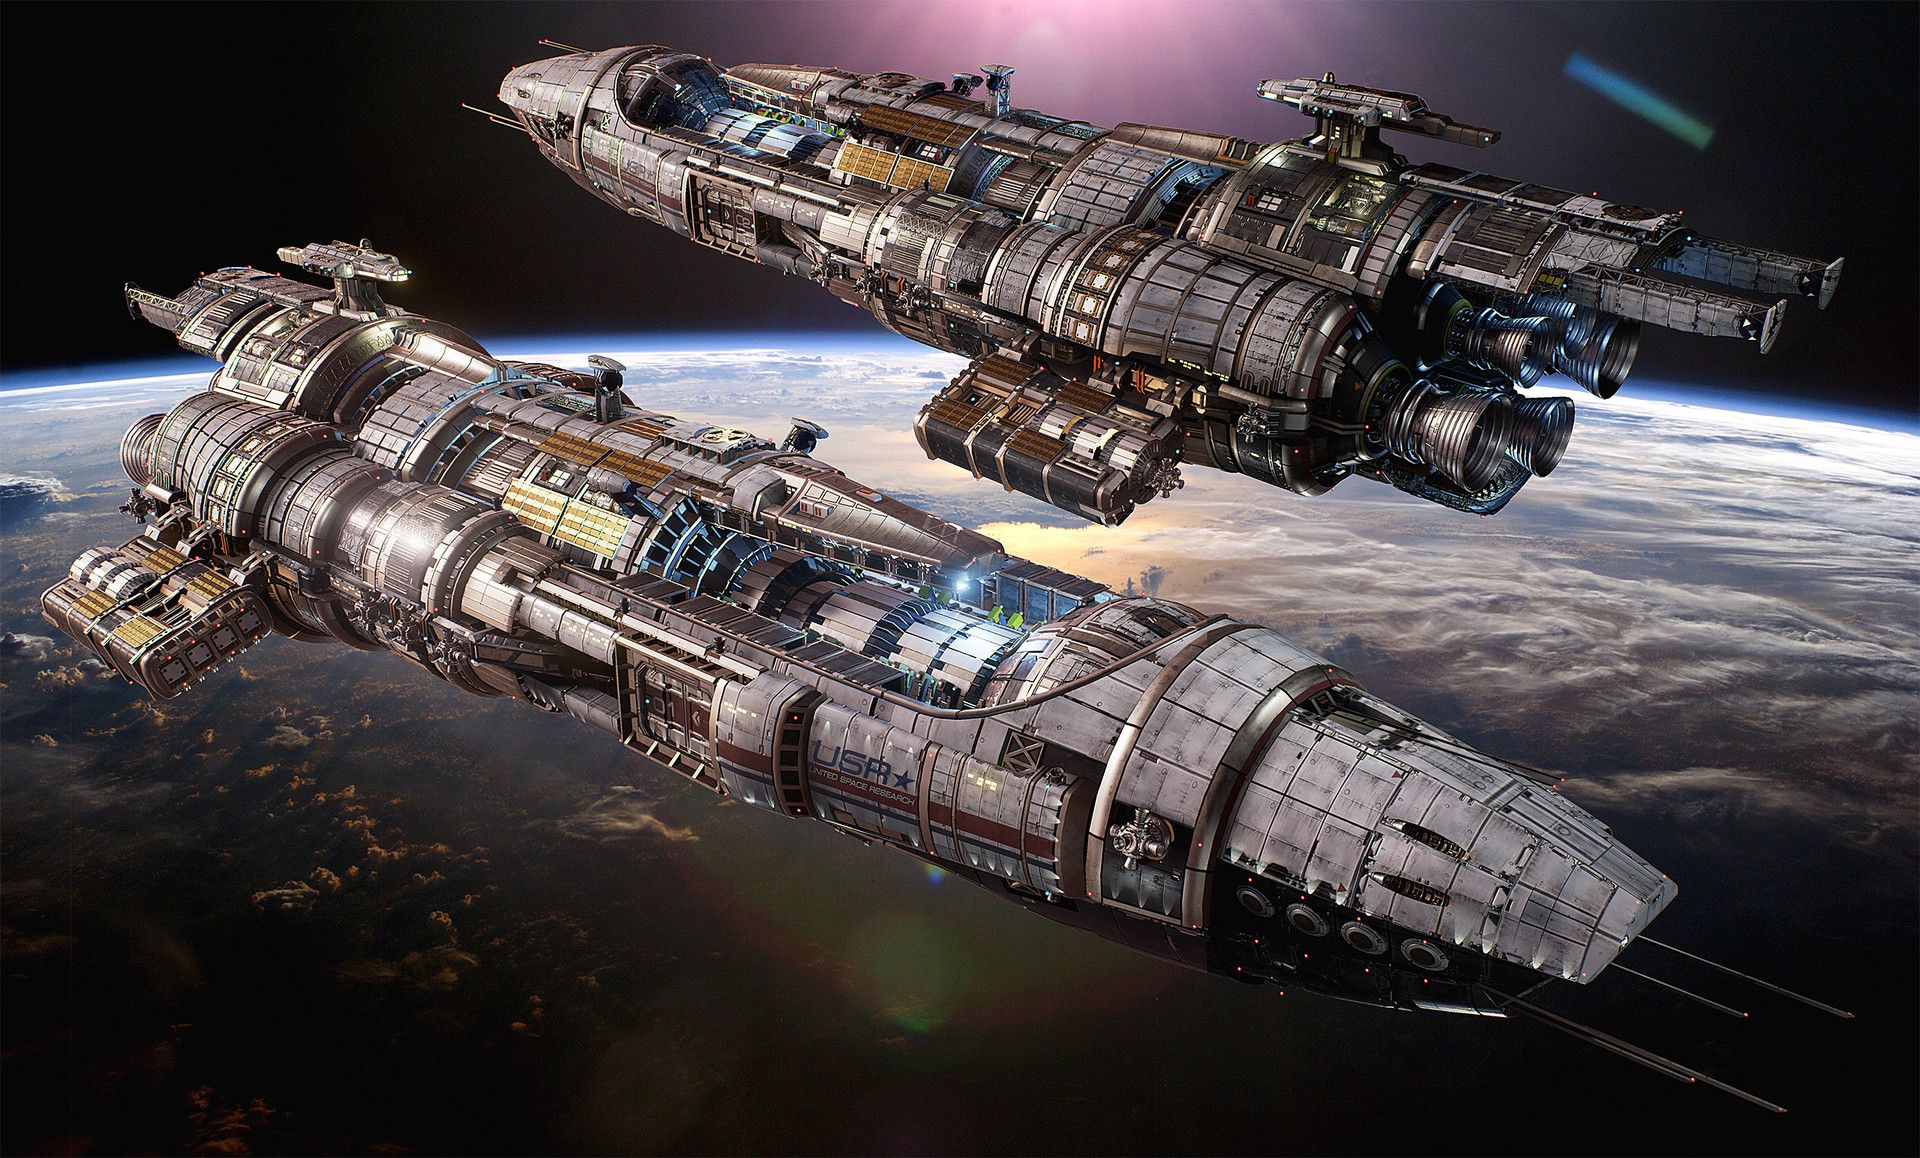 For ECG's Fractured Space - concept and all asset work by myself with help from ECG lead artist Alex Clarke on the design. Rendered in-game (Unreal Engine 4). http://fracturedspace.com The USR Black Widow is a stealth ship equipped with three different missile systems to provide long-range fire support and damage to allies. It has no short-range attack capabilities, so keeping your distance to your enemies is crucial, which is where its cloaking systems come in handy to escape sticky…